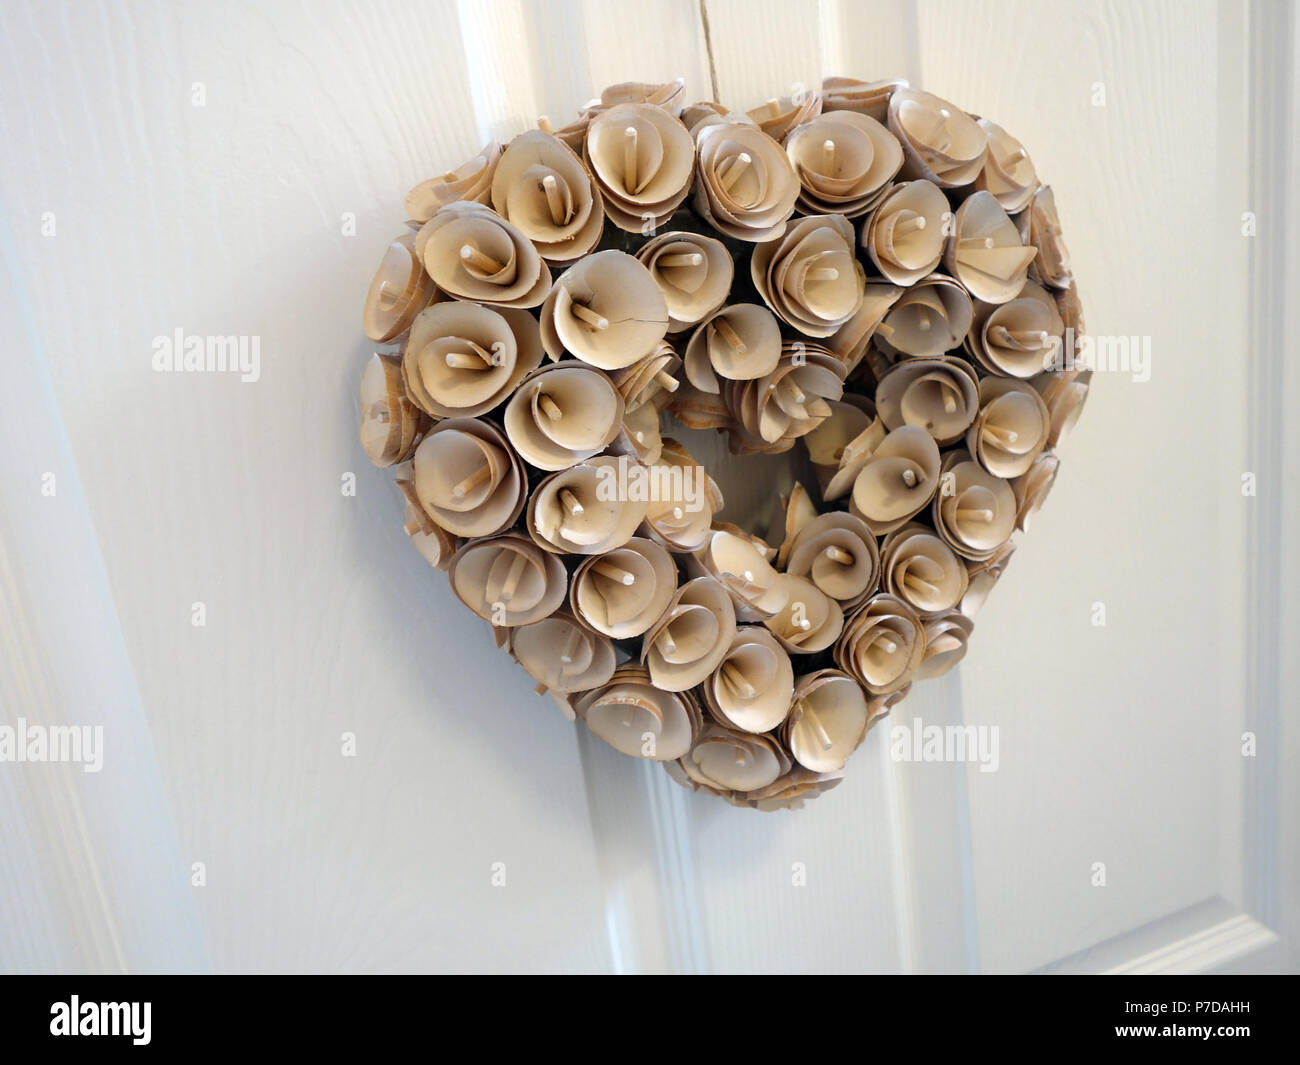 Carved wooden flowers formed into heart shape for door hanging - Stock Image